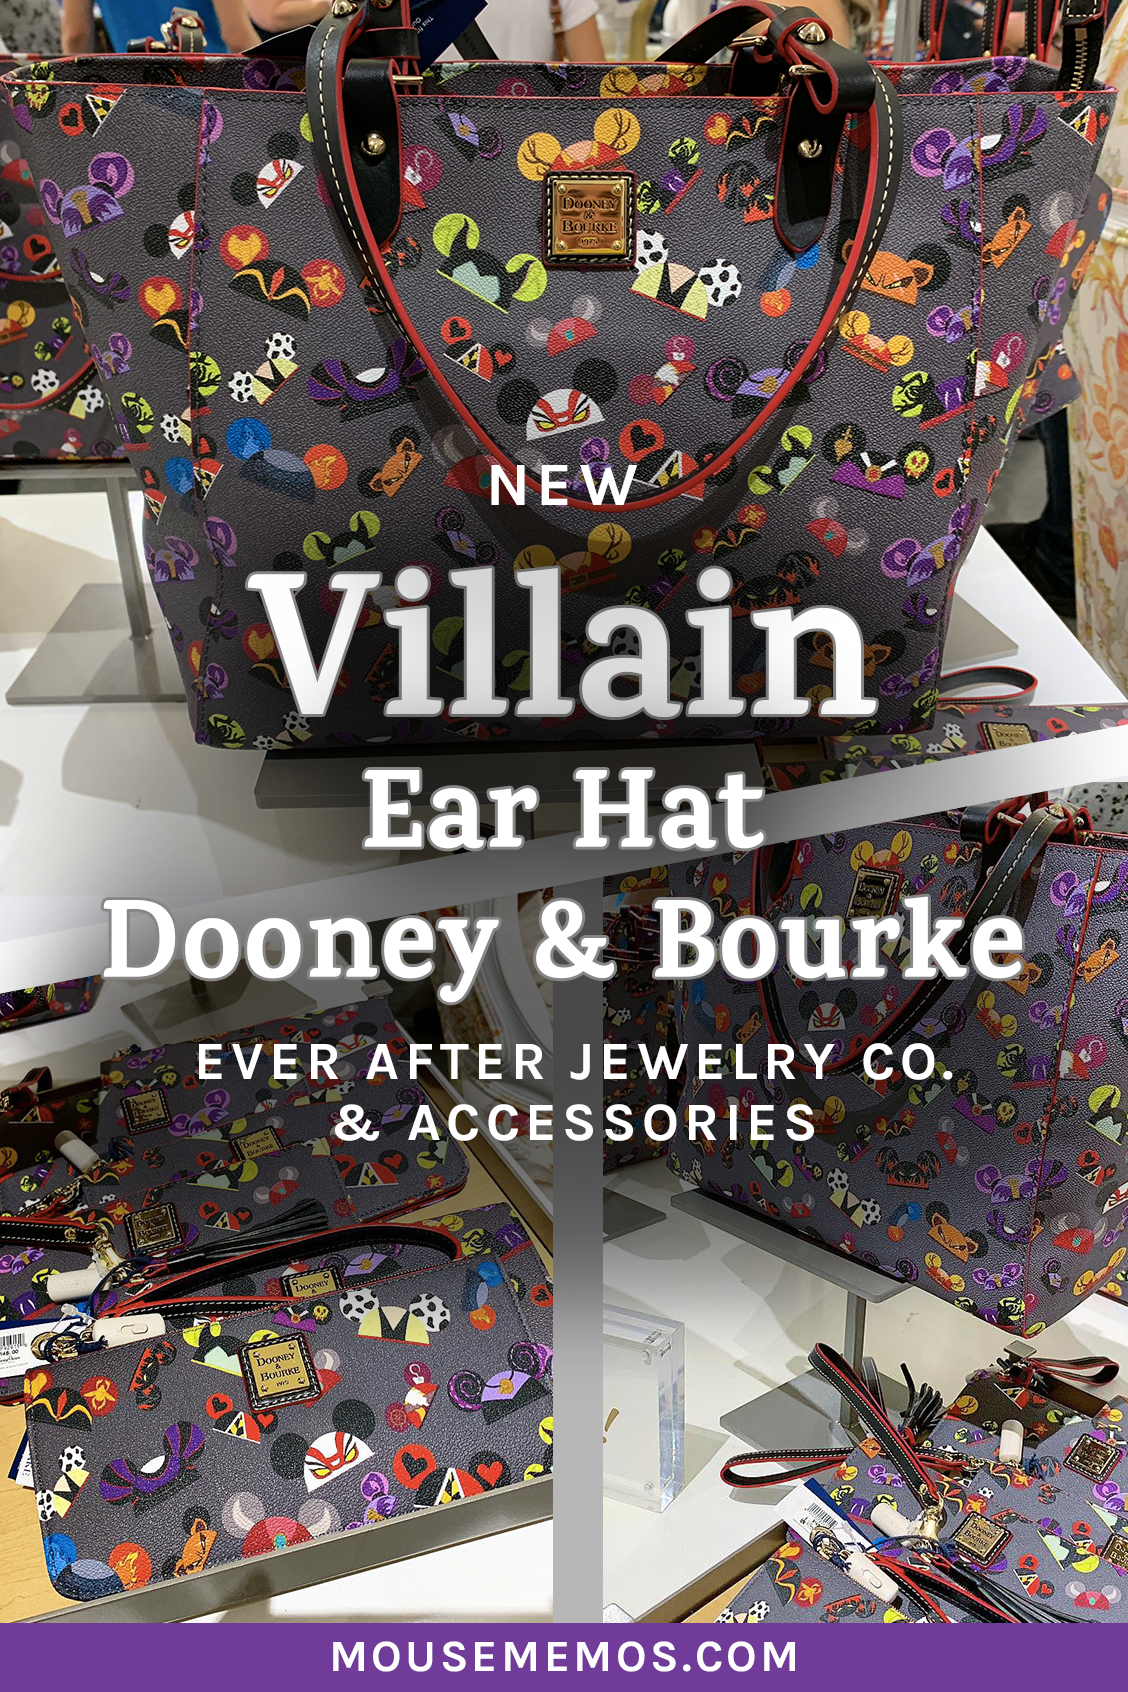 062c0c24c We are totally crushing on the New Disney Villain Ear Hat Dooney & Bourke  Collection at Ever After Jewelry Co. & Accessories in Disney Springs!